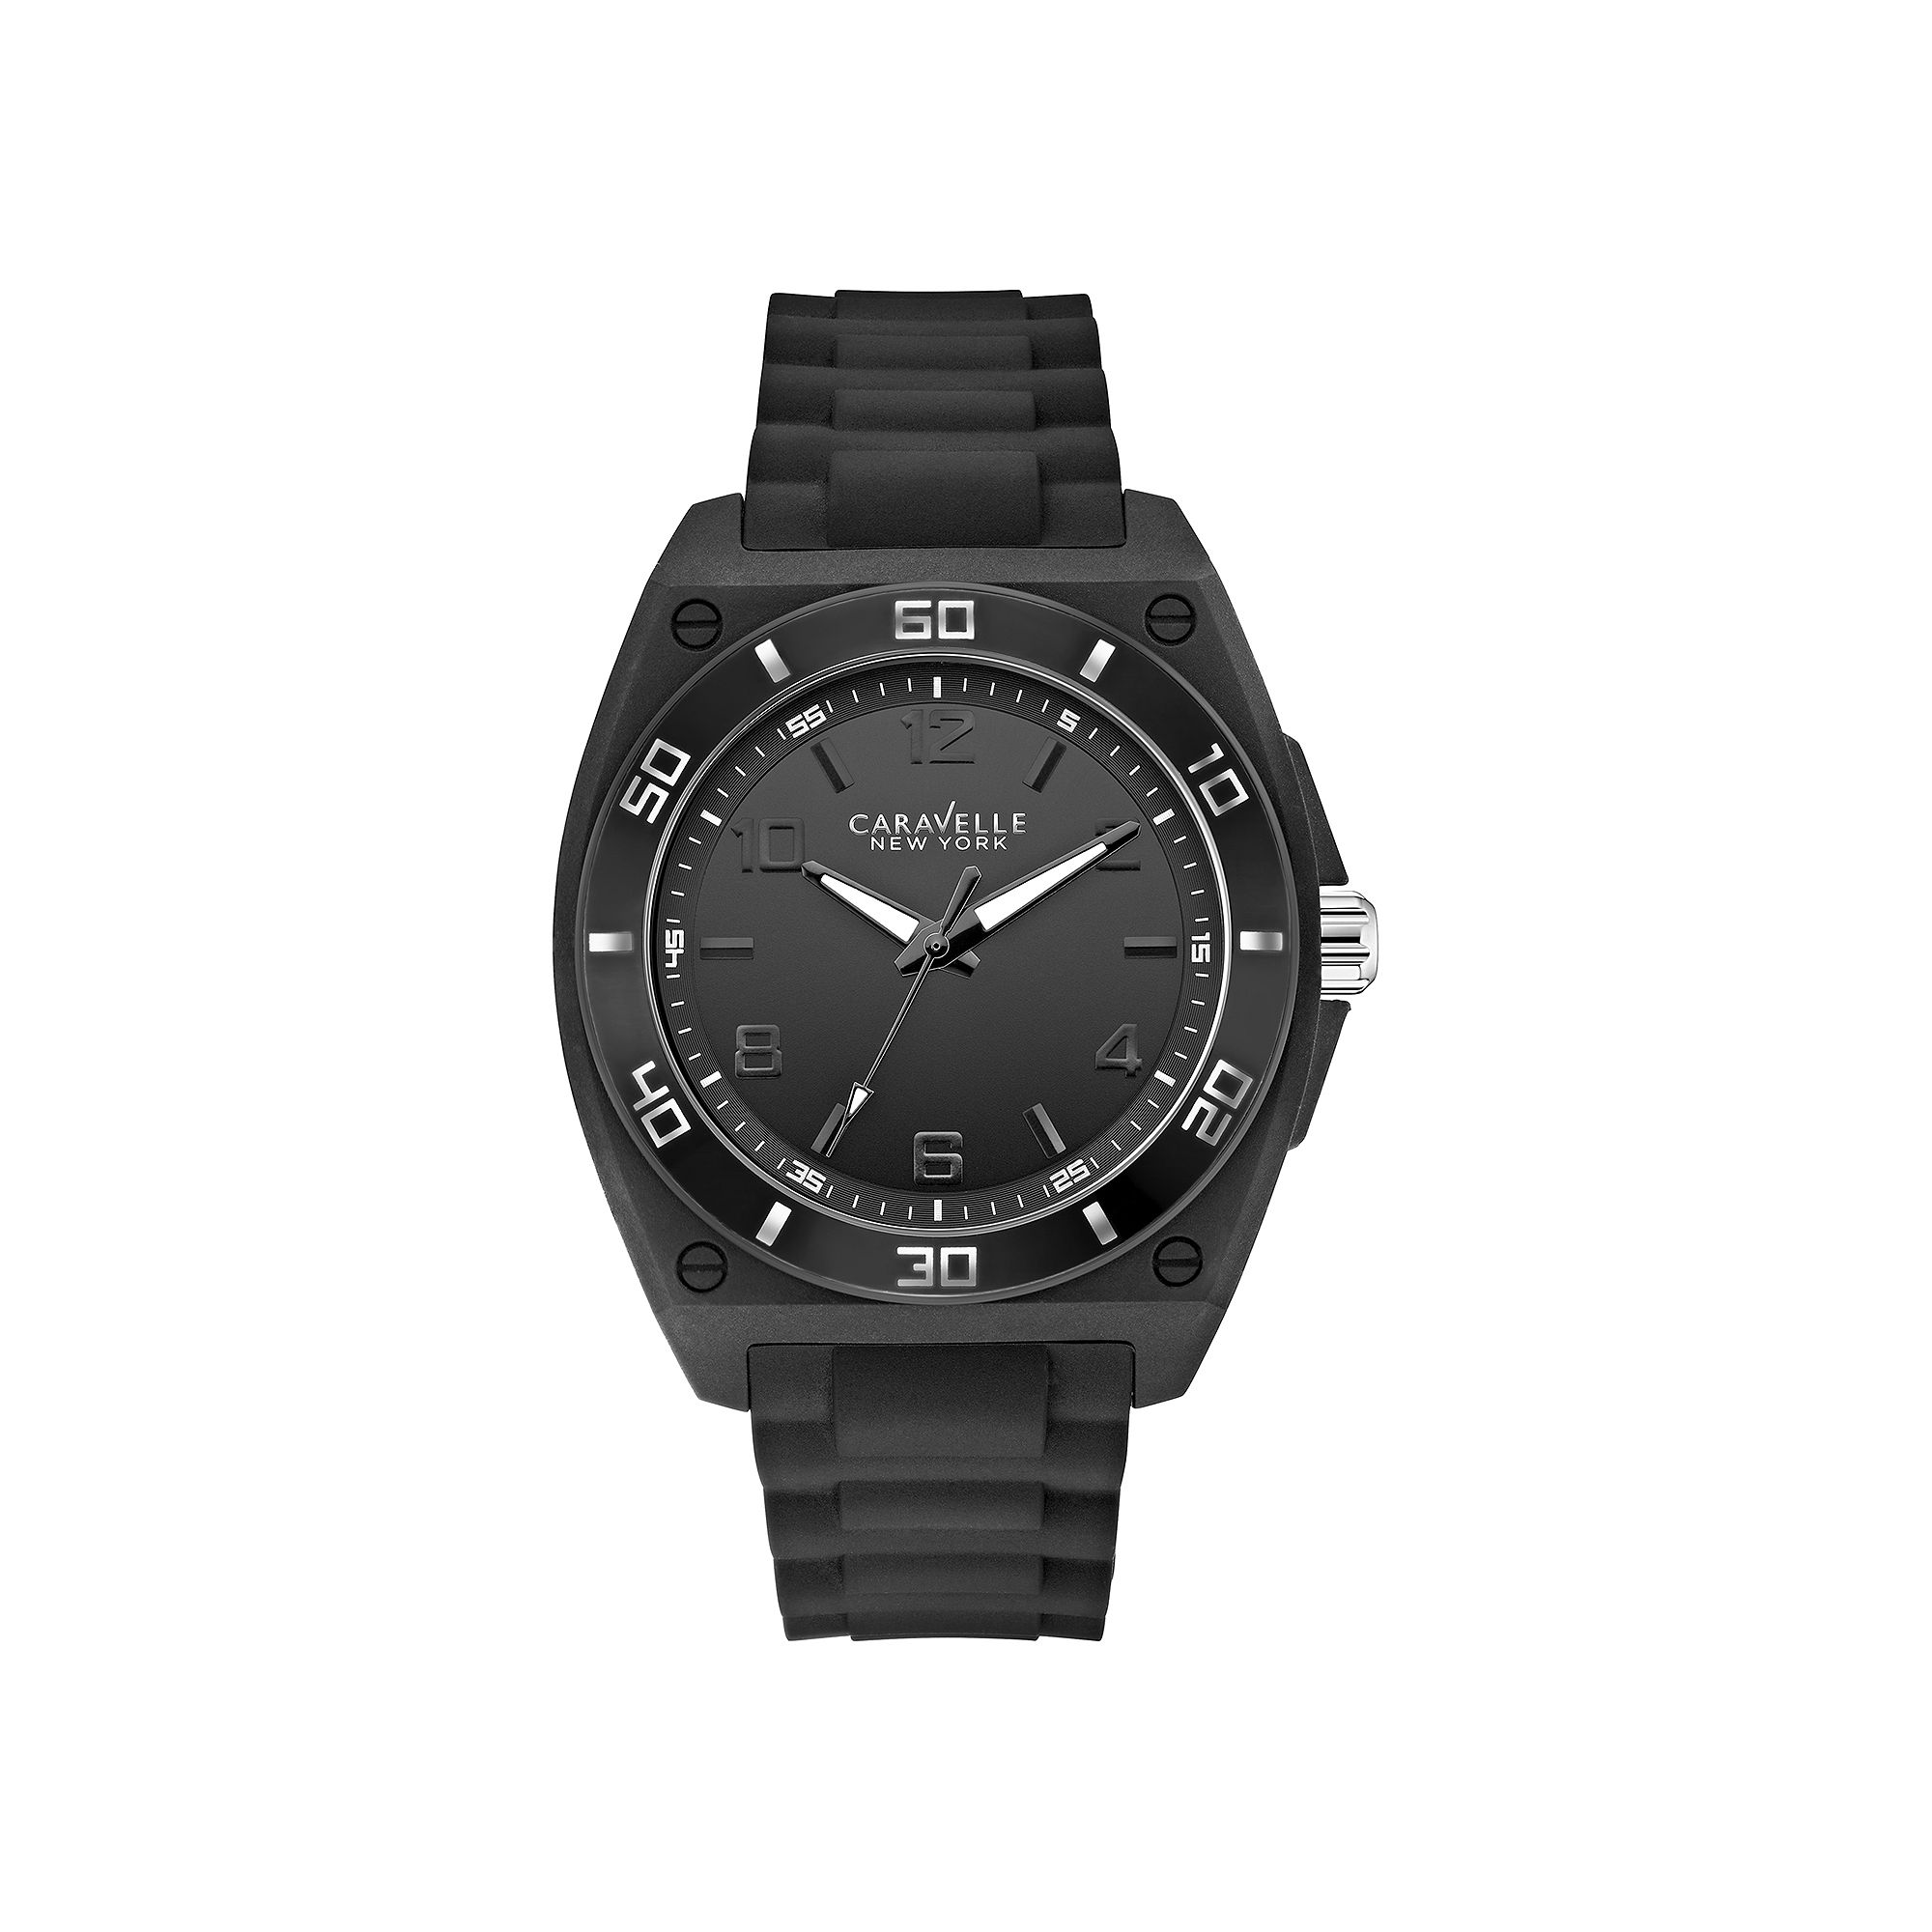 Caravelle New York Mens Black Strap Watch 43A127